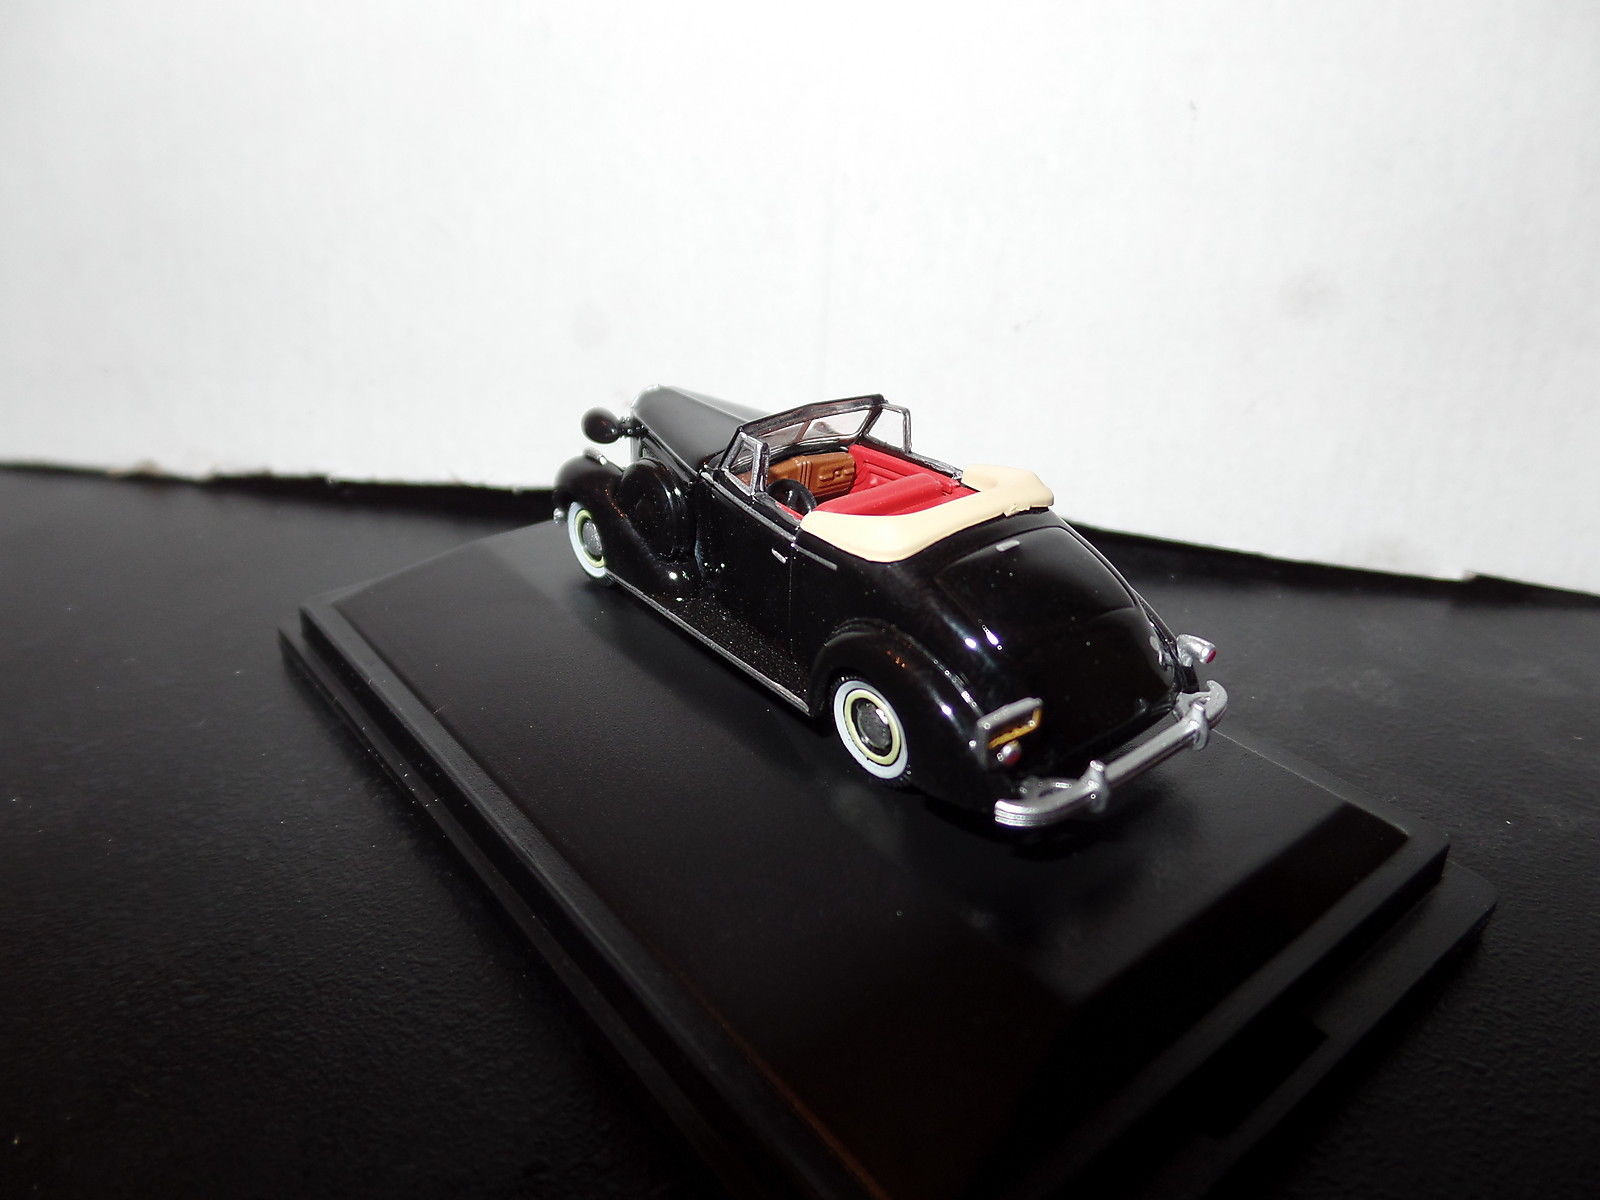 Art-Toys > BUICK(GENERAL MOTORS) > BUICK SPECIAL CONVERTIBLE COUPE ...